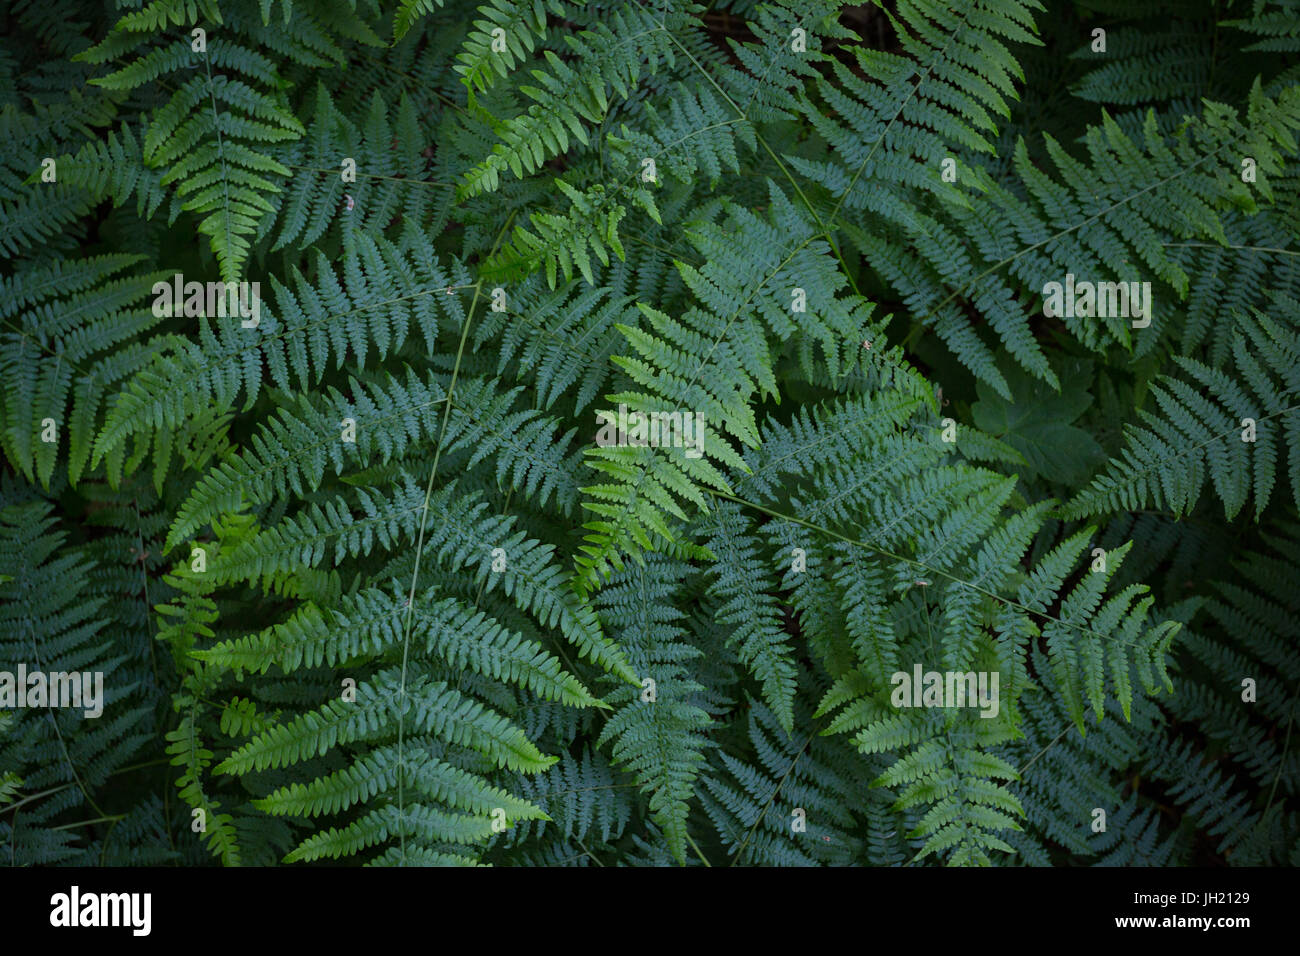 Natural texture or background from the forest floor: Top view of green fern or bracken leaves in late spring - Pteridium - Stock Image